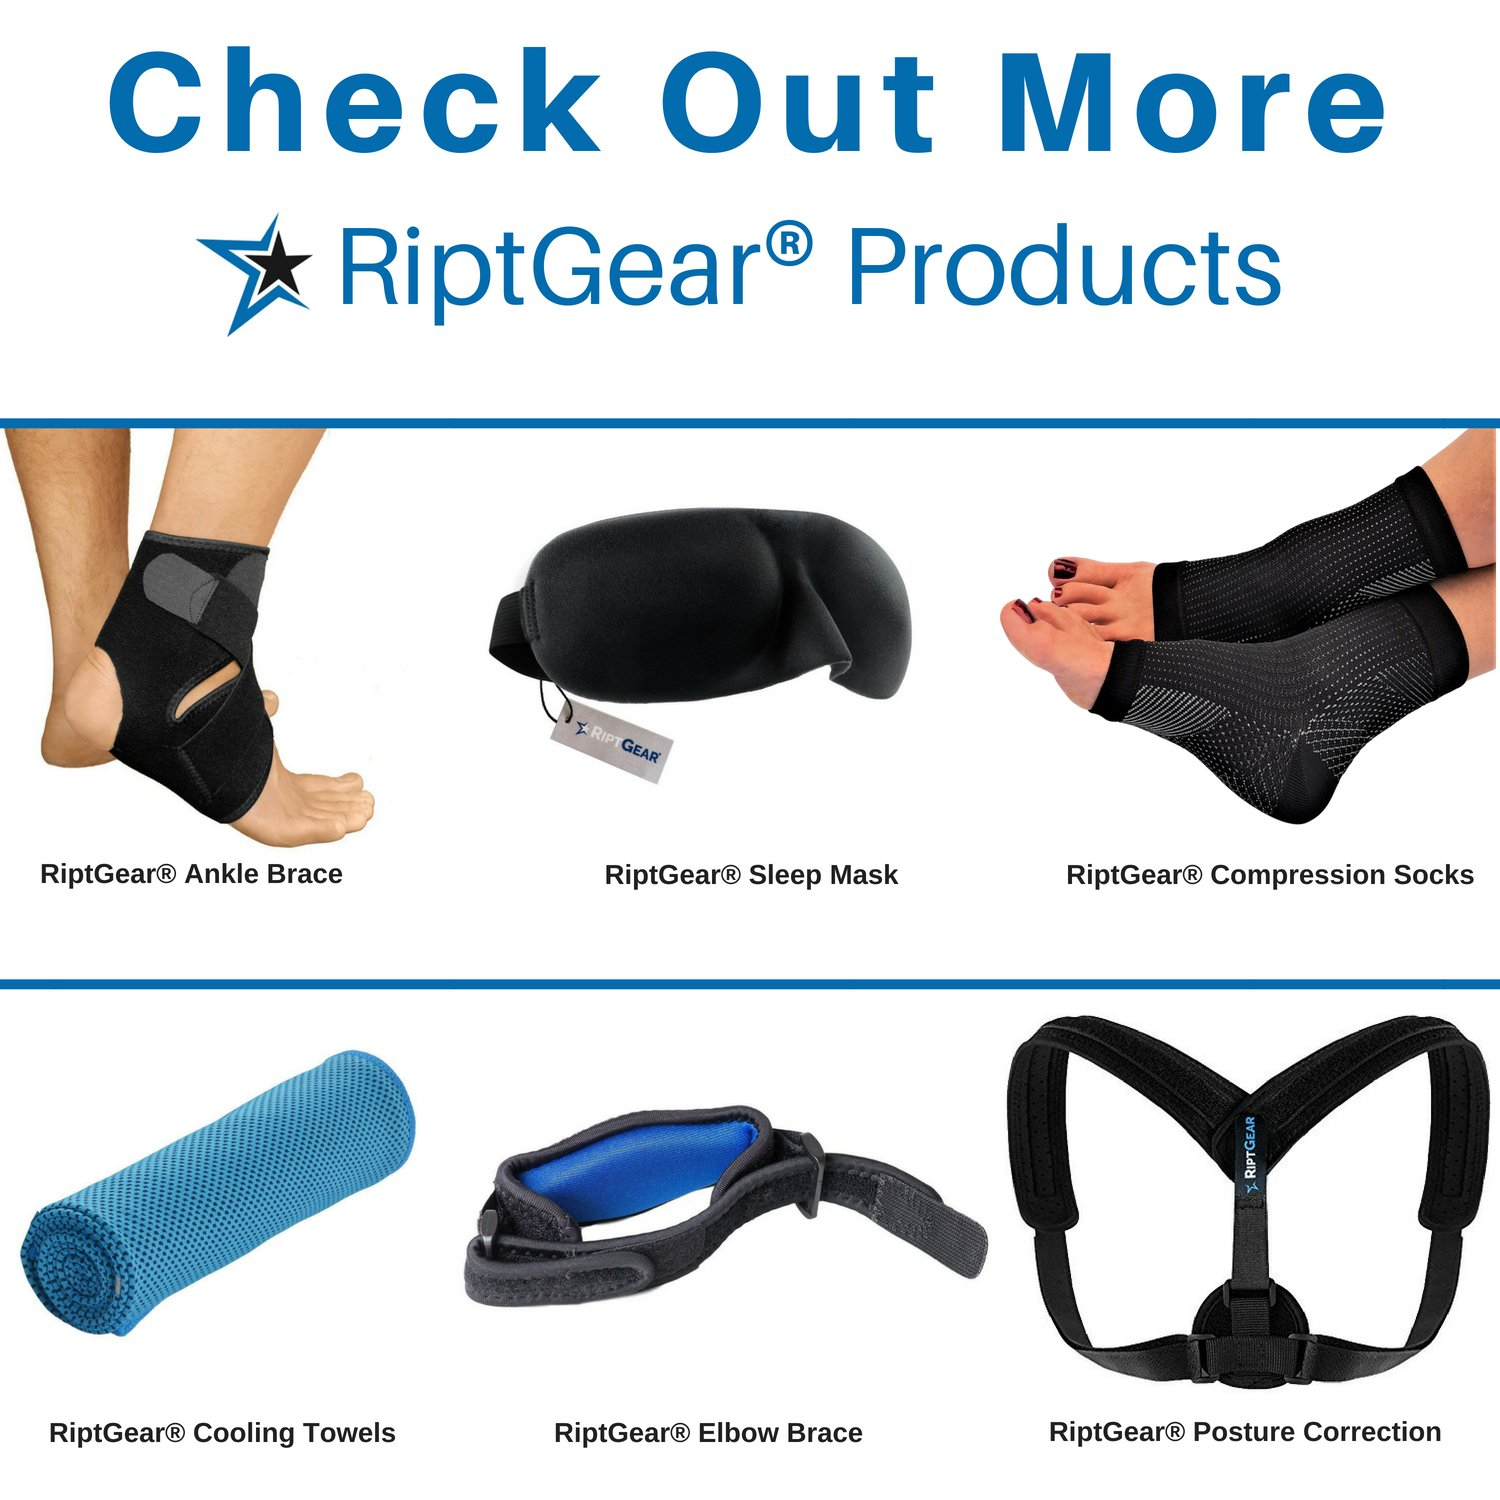 NEW-Knee-Compression-Sleeve-for-Men-and-Women-by-RiptGear-Knee-Brace-Support thumbnail 39